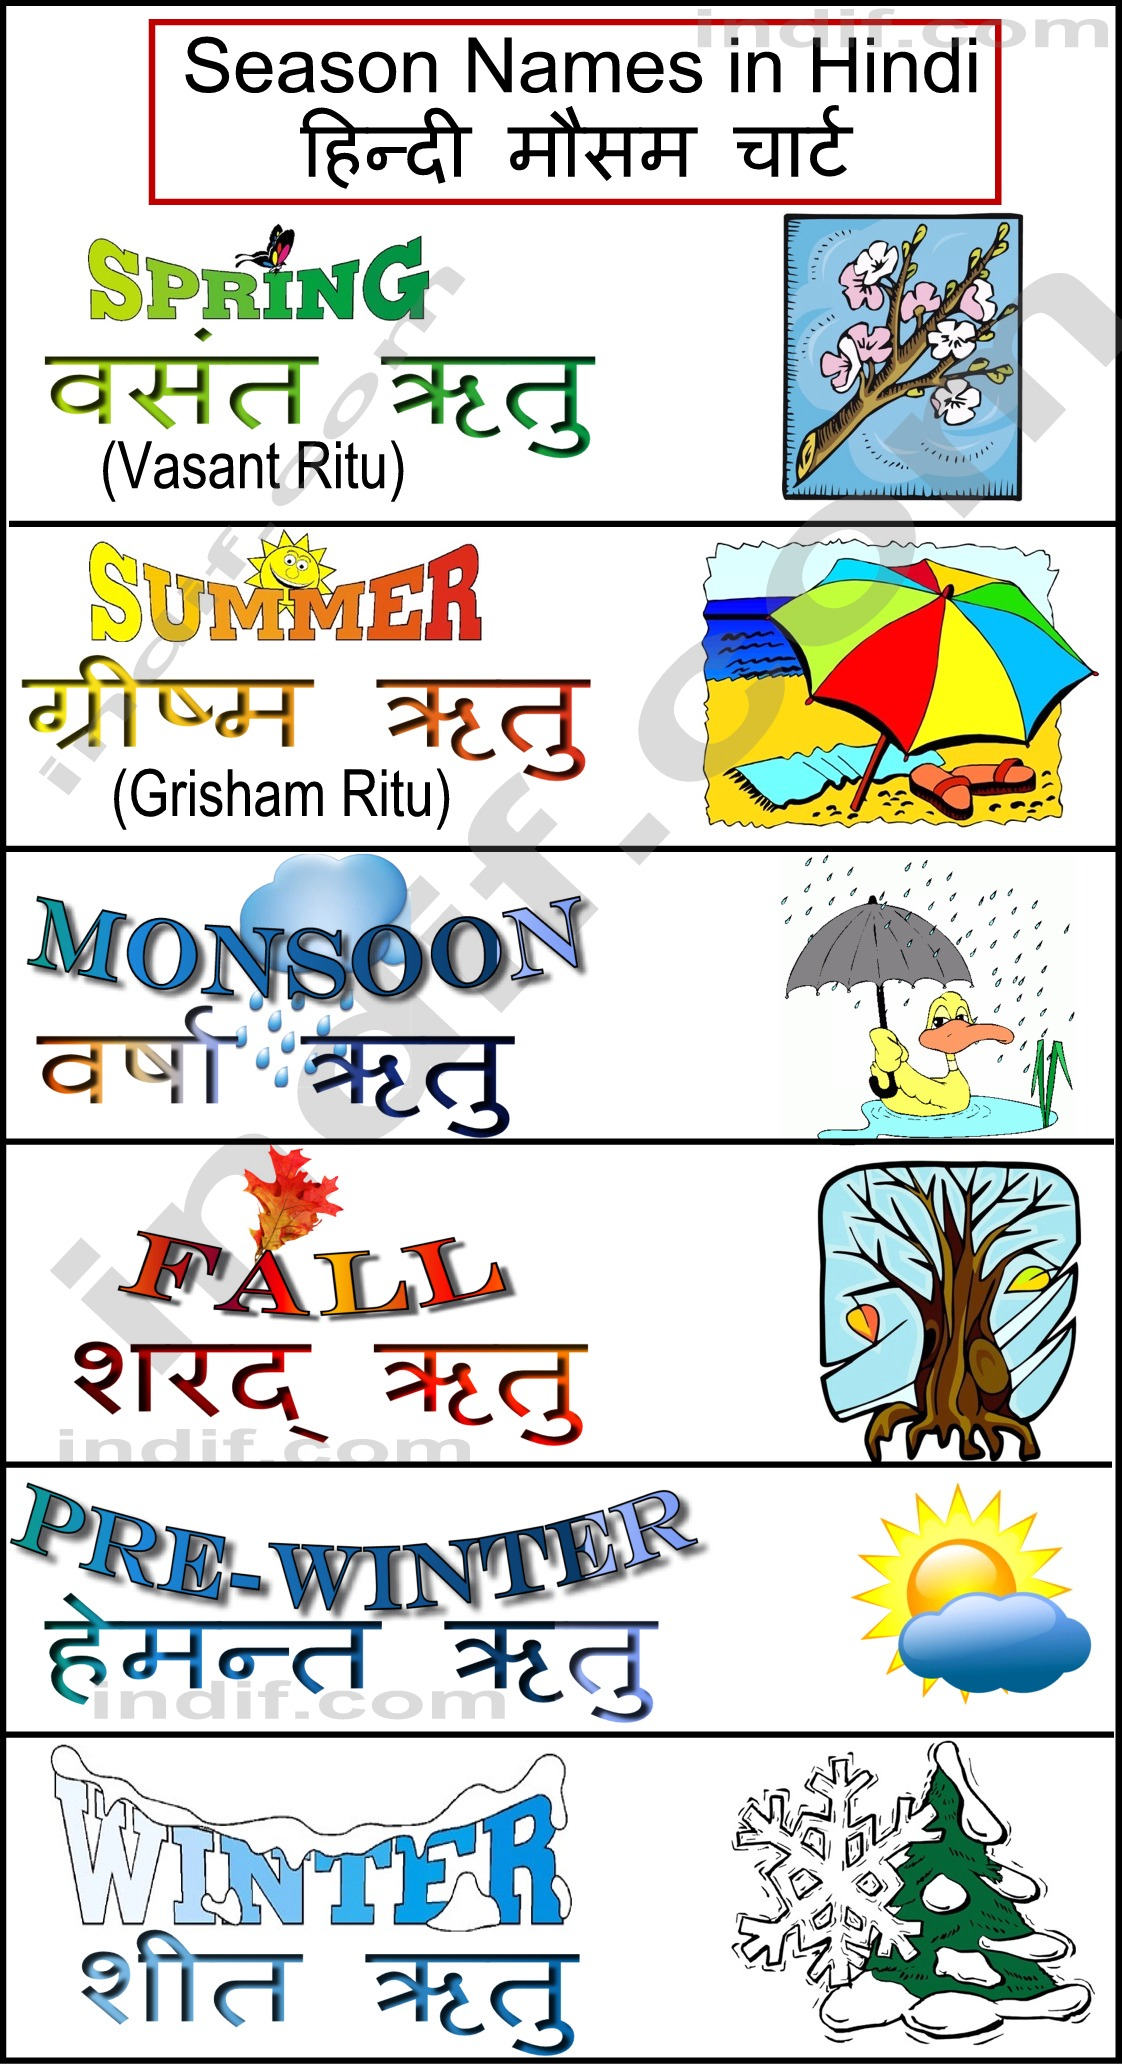 Seasons chart in hindi seasons chart in hindi season names in hindi ccuart Images